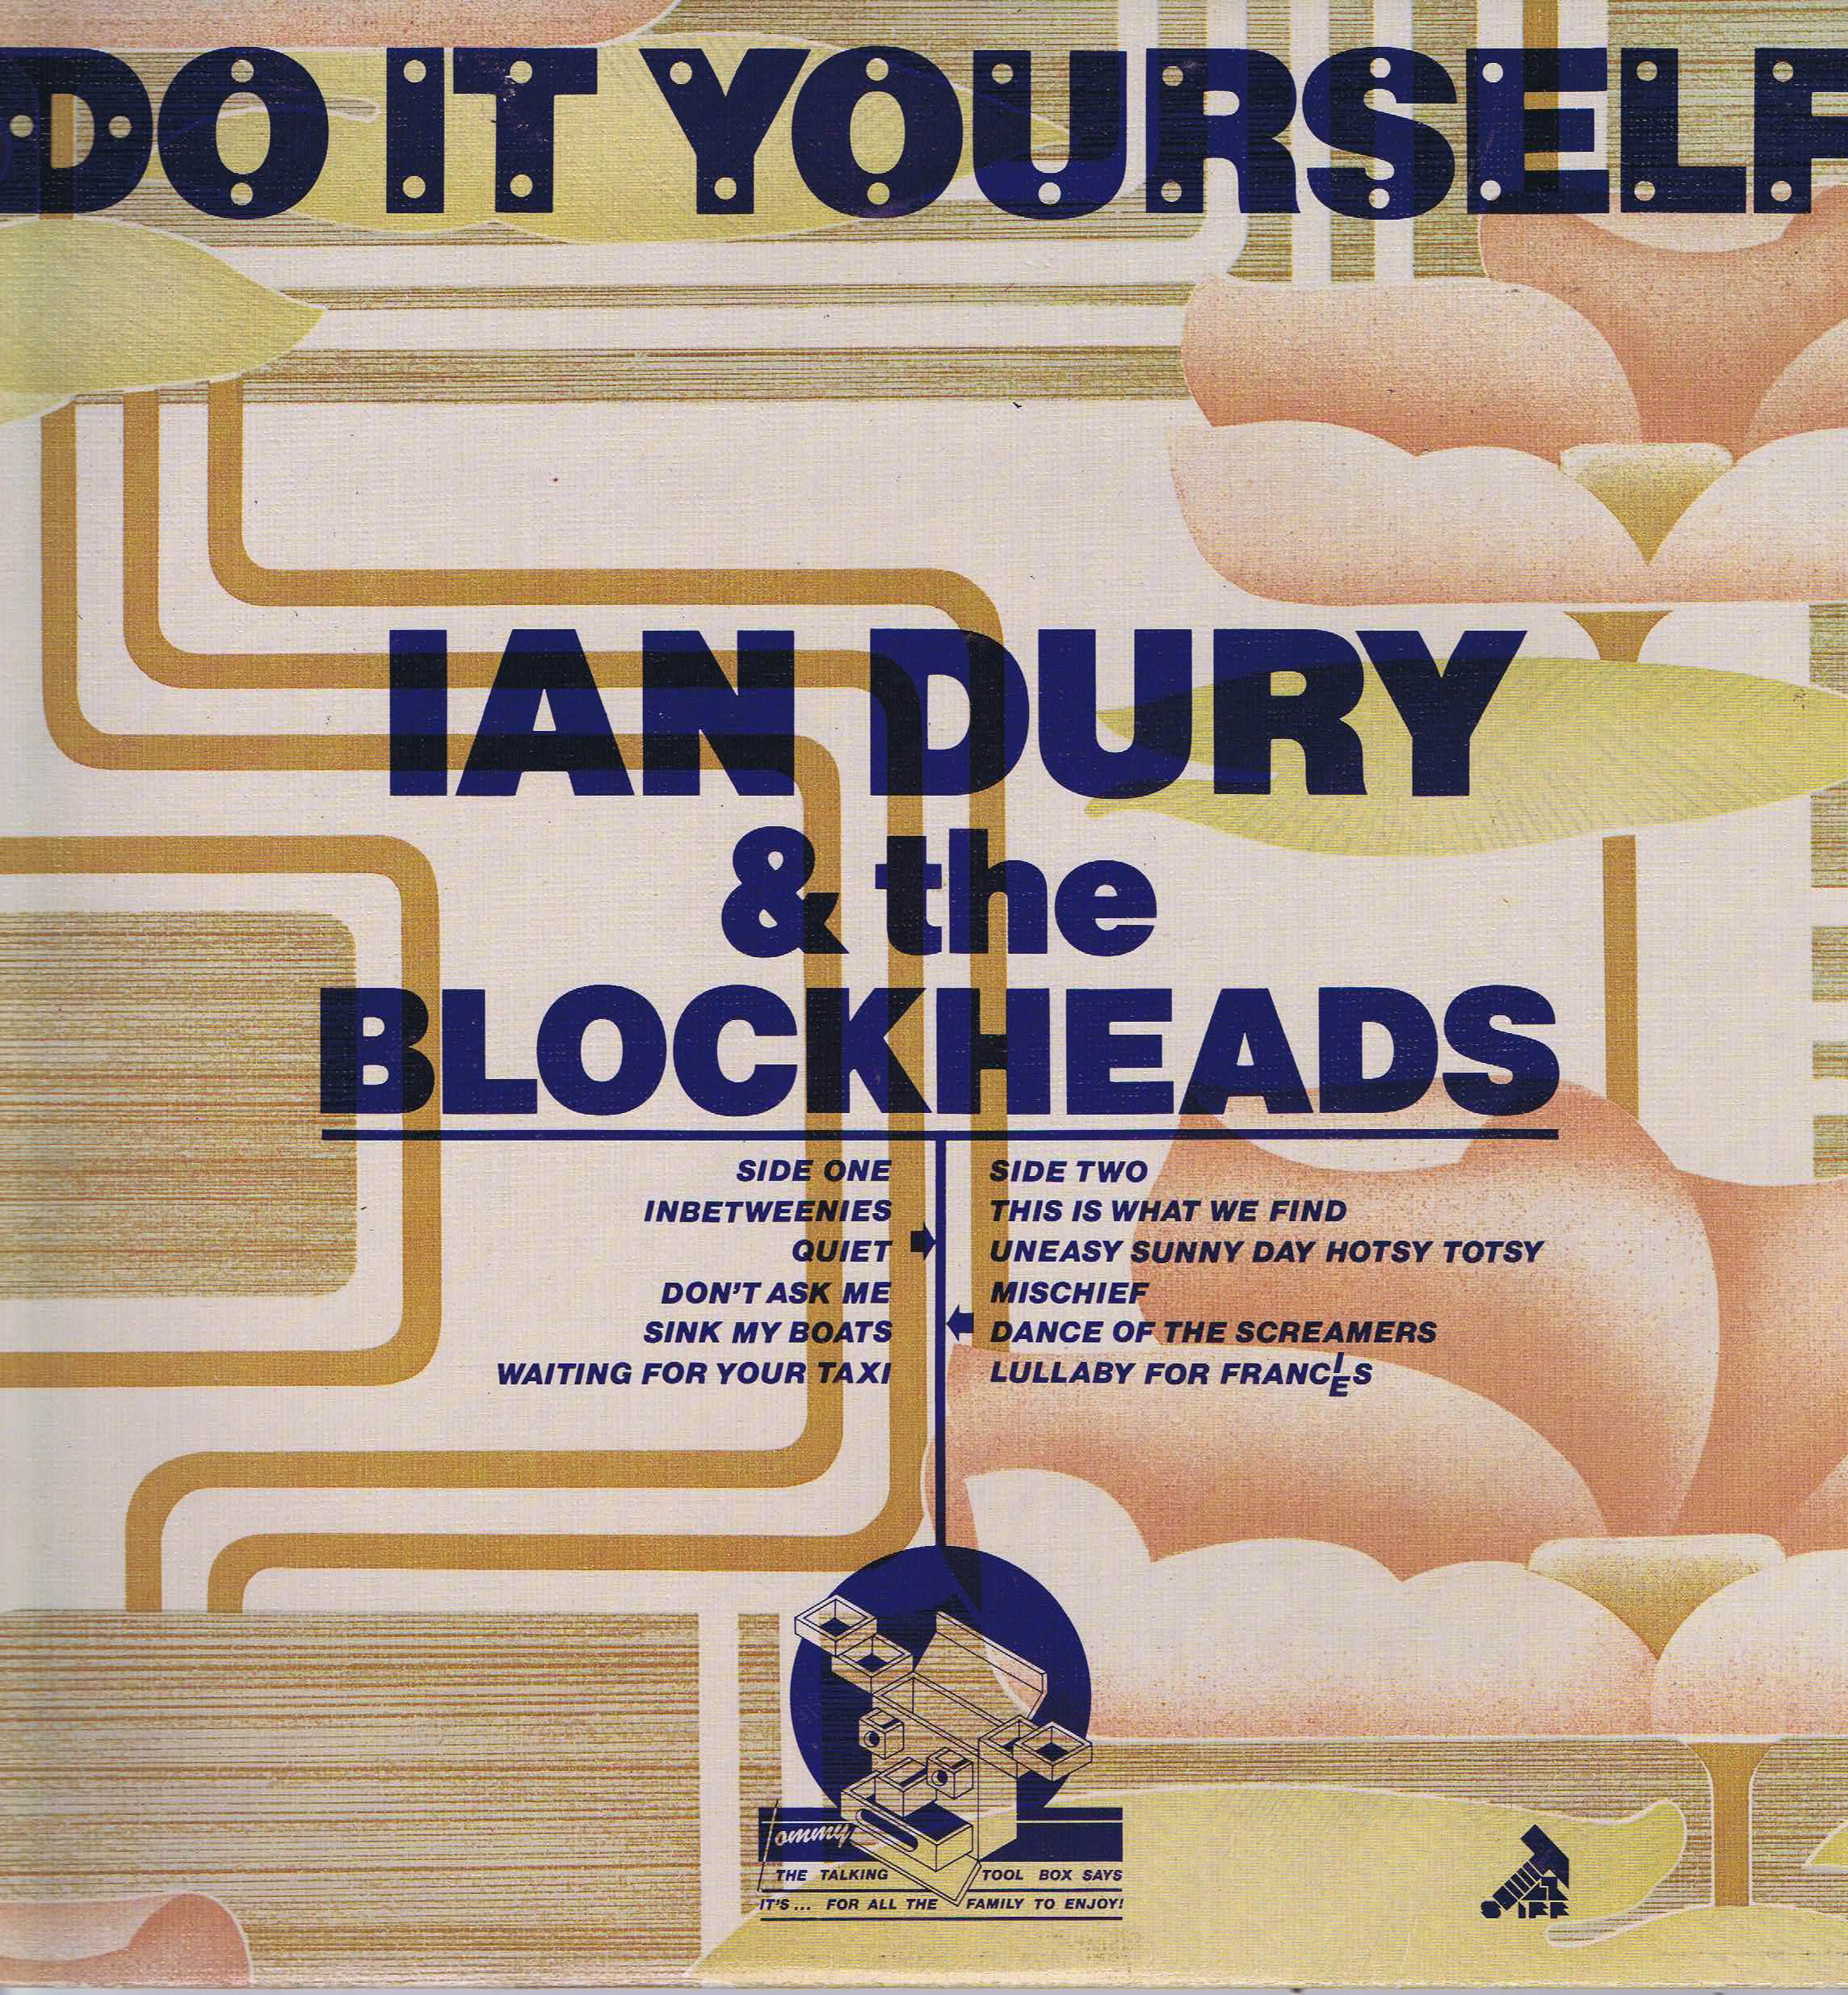 Ian dury the blockheads do it yourself seez 14 lp vinyl ian dury the blockheads do it yourself seez 14 lp vinyl record solutioingenieria Images